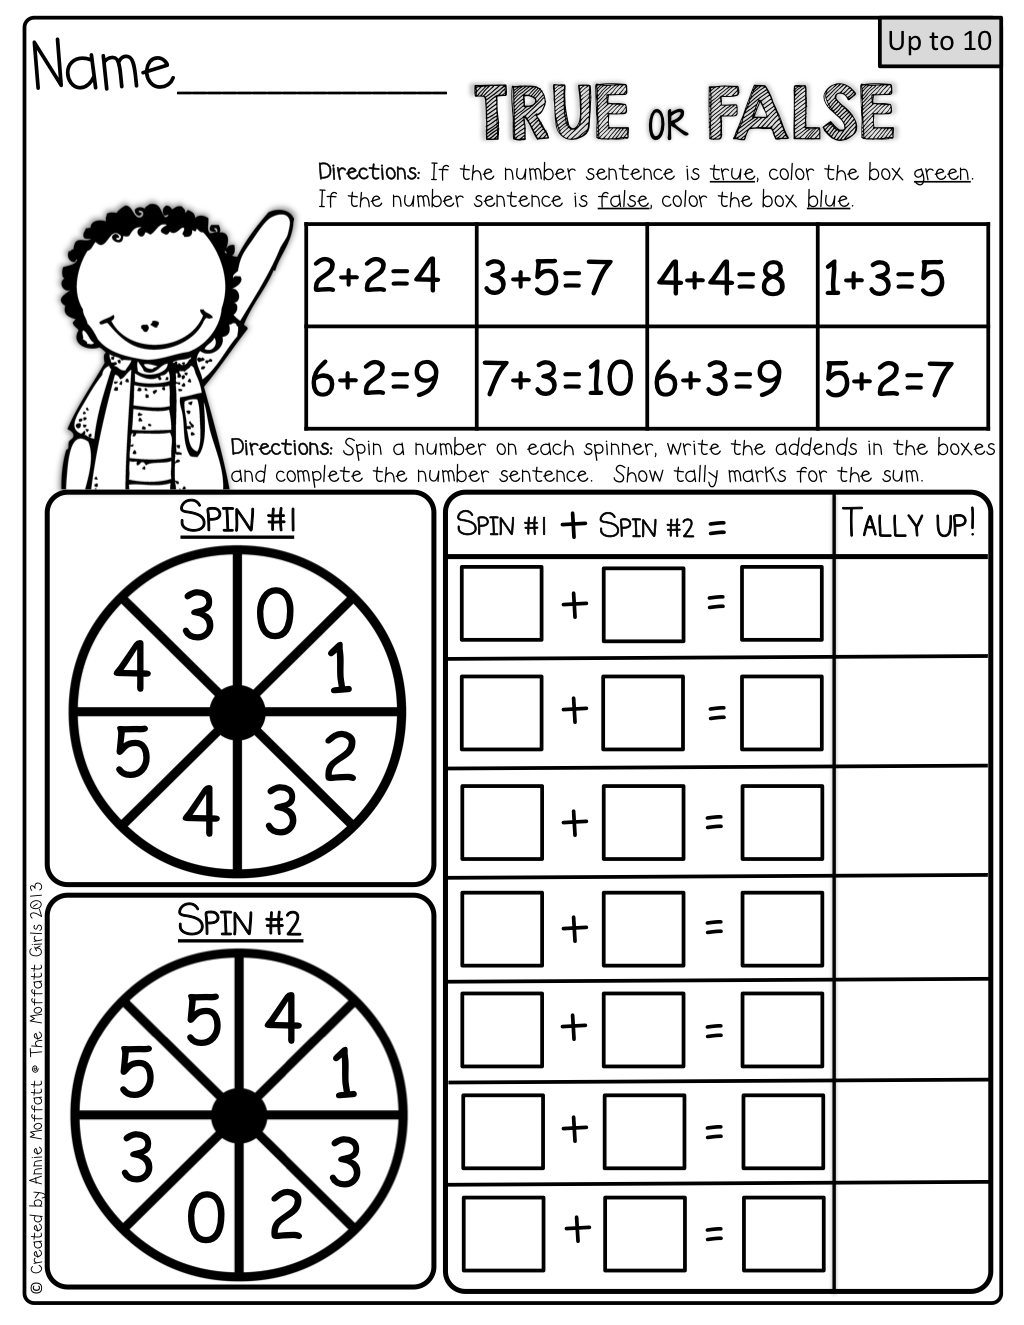 Interactive Math! Color the True/False and spin the